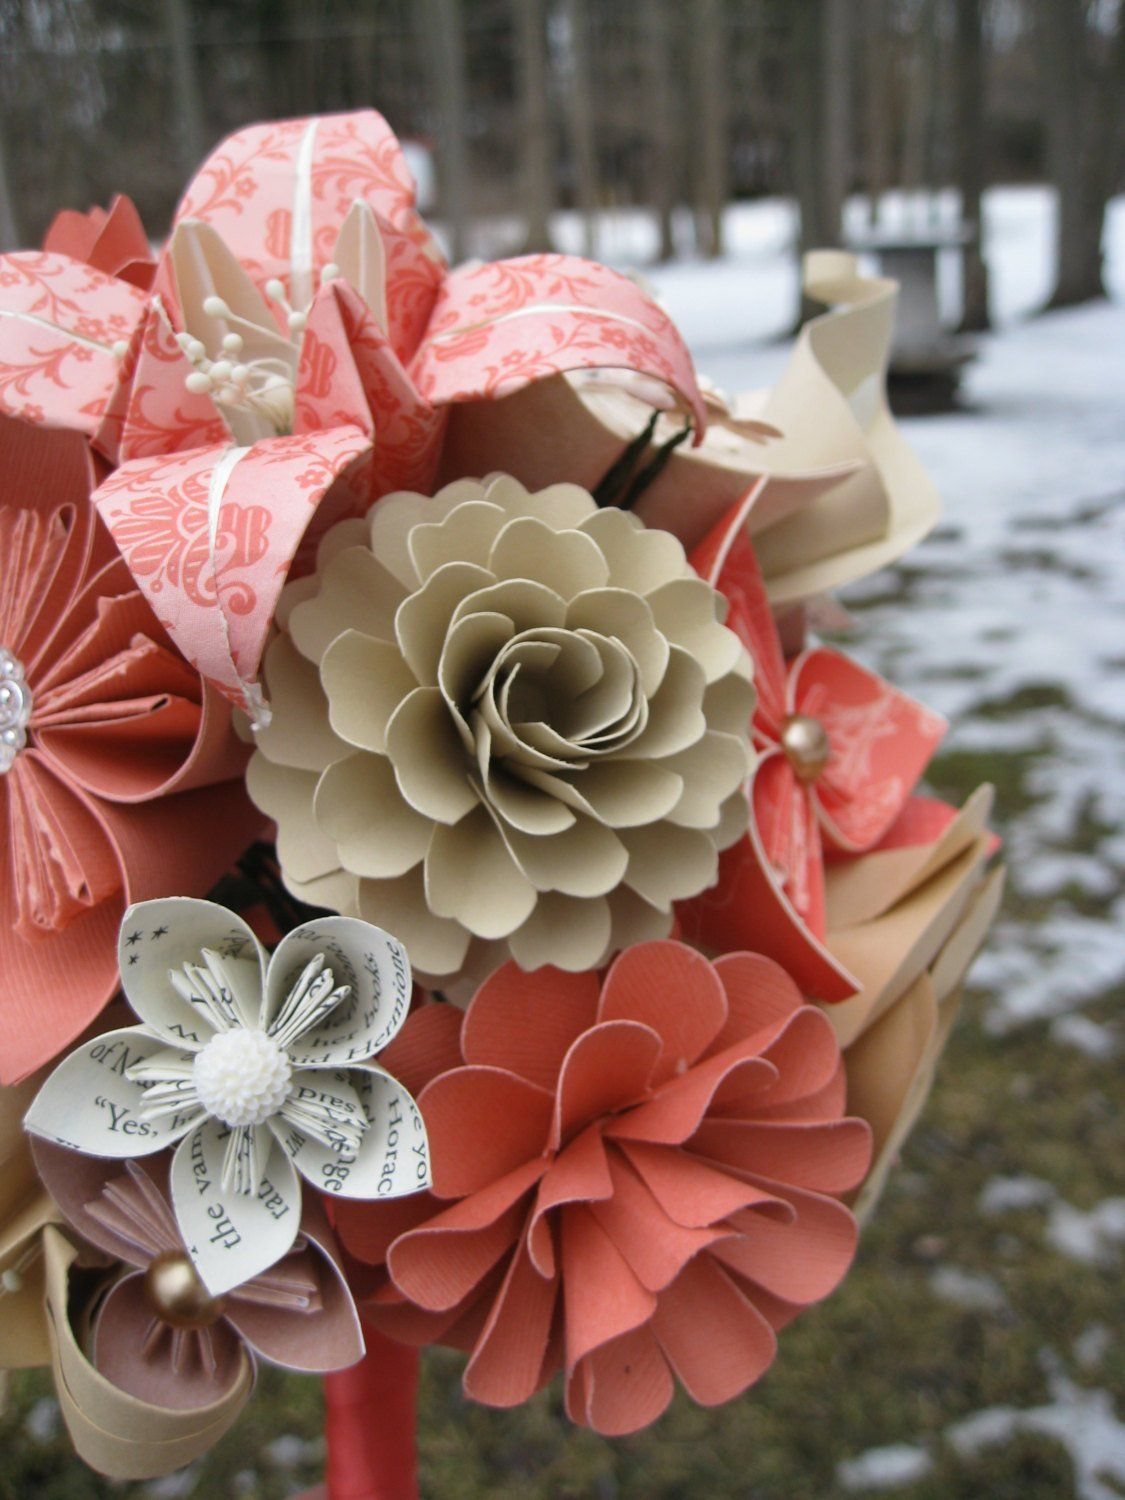 Custom Paper Flower Wedding Bouquet Books You Pick The Colors Papers Etc.